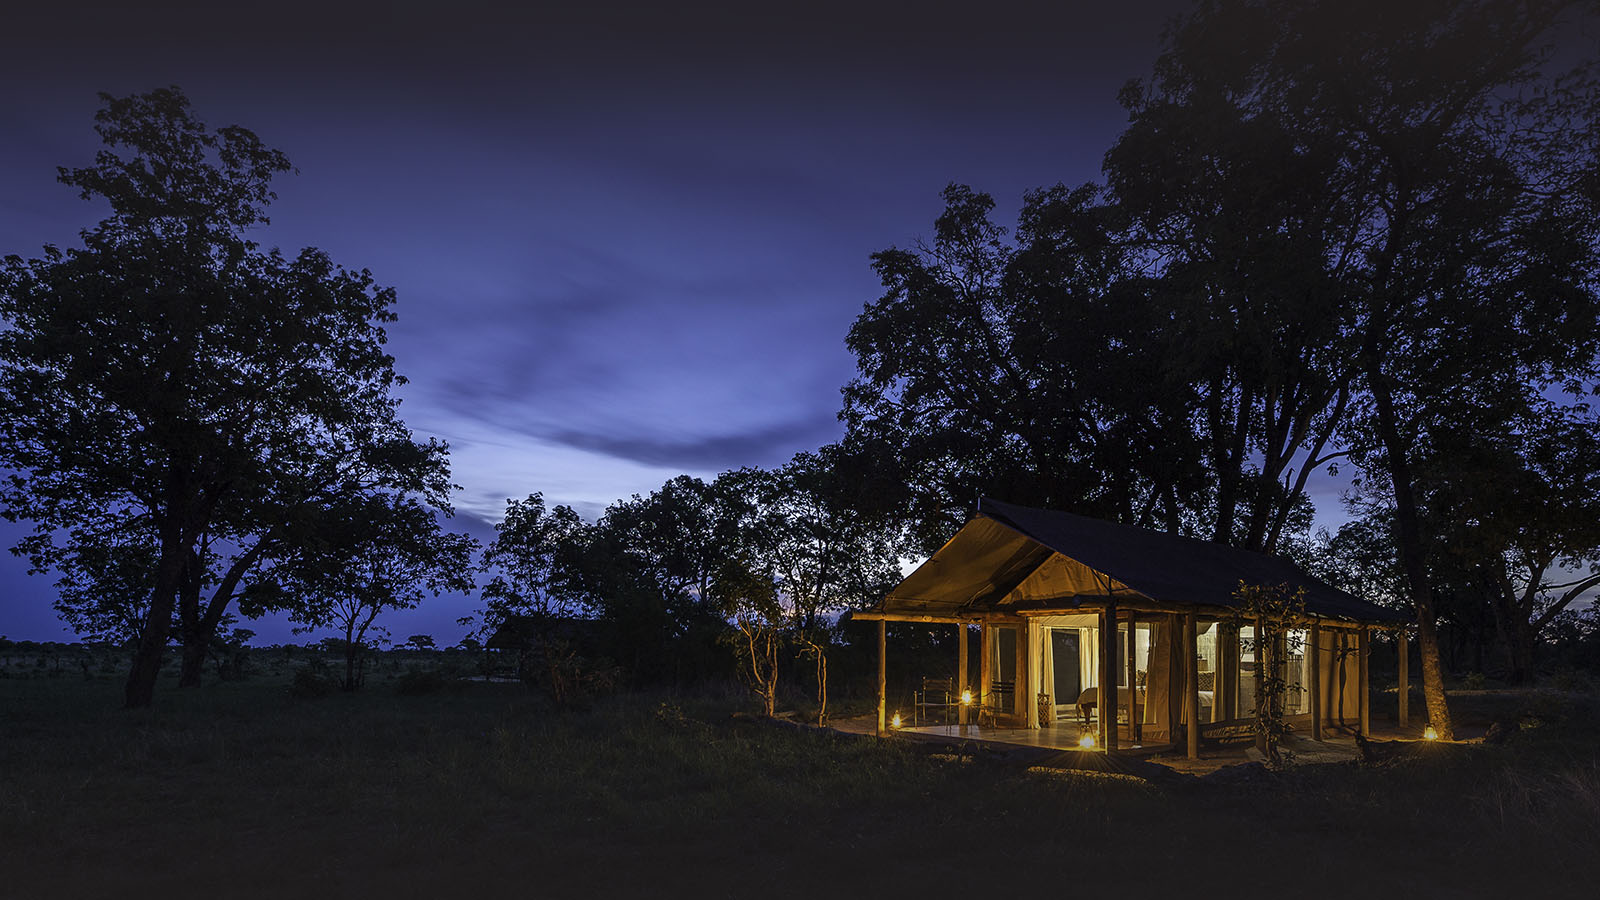 davisons camp hwange-national-park-zimbabwe-accommodation-lodges-wilderness-safaris-scenic